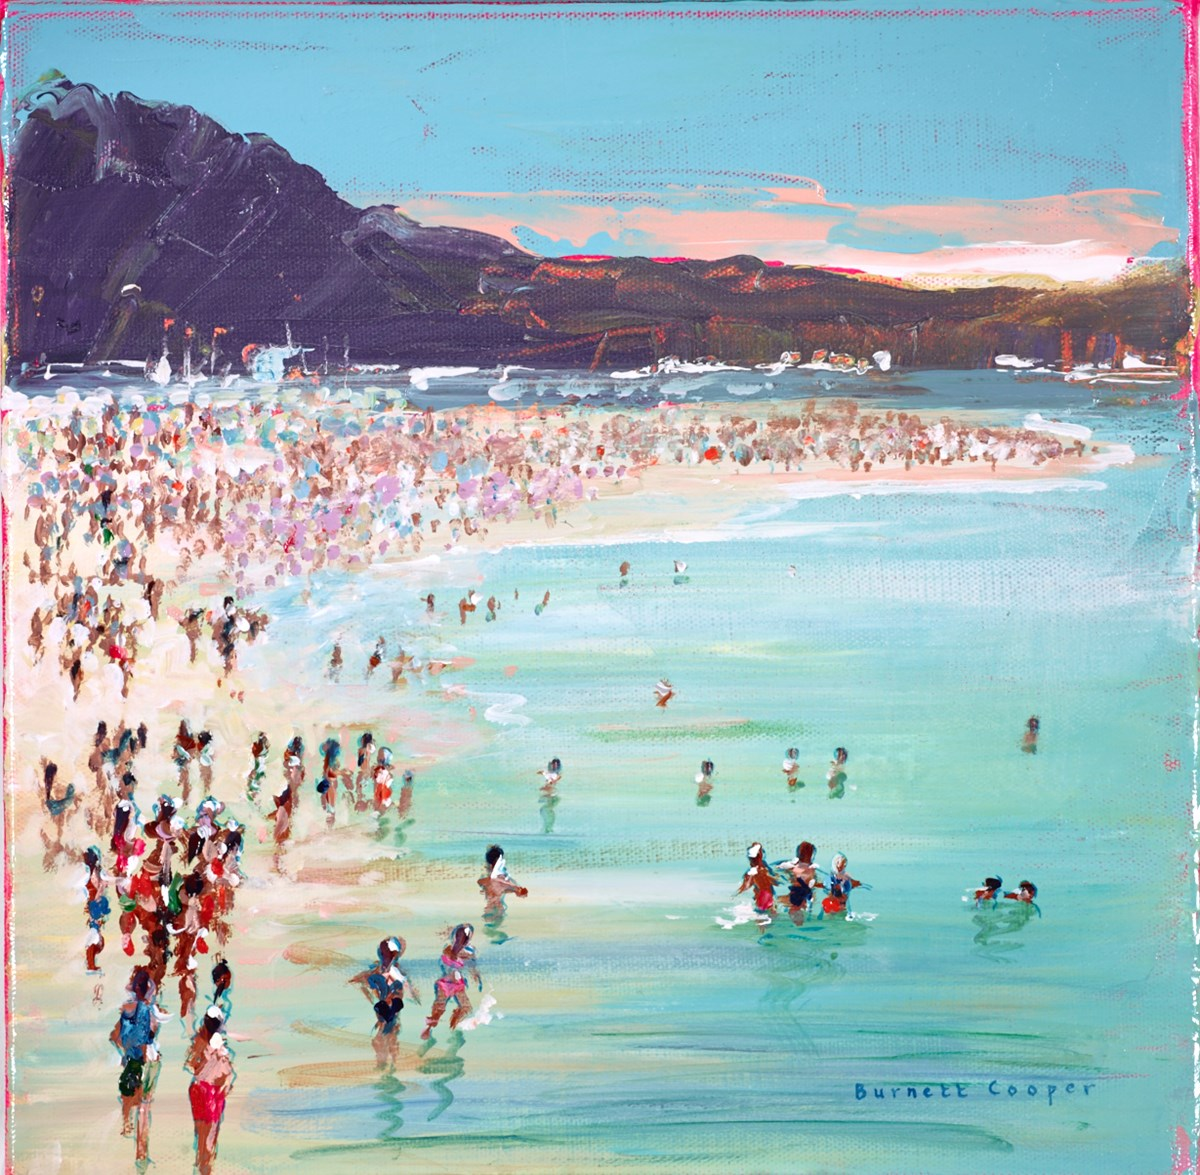 Beach Escapades by hilary burnett cooper -  sized 12x12 inches. Available from Whitewall Galleries